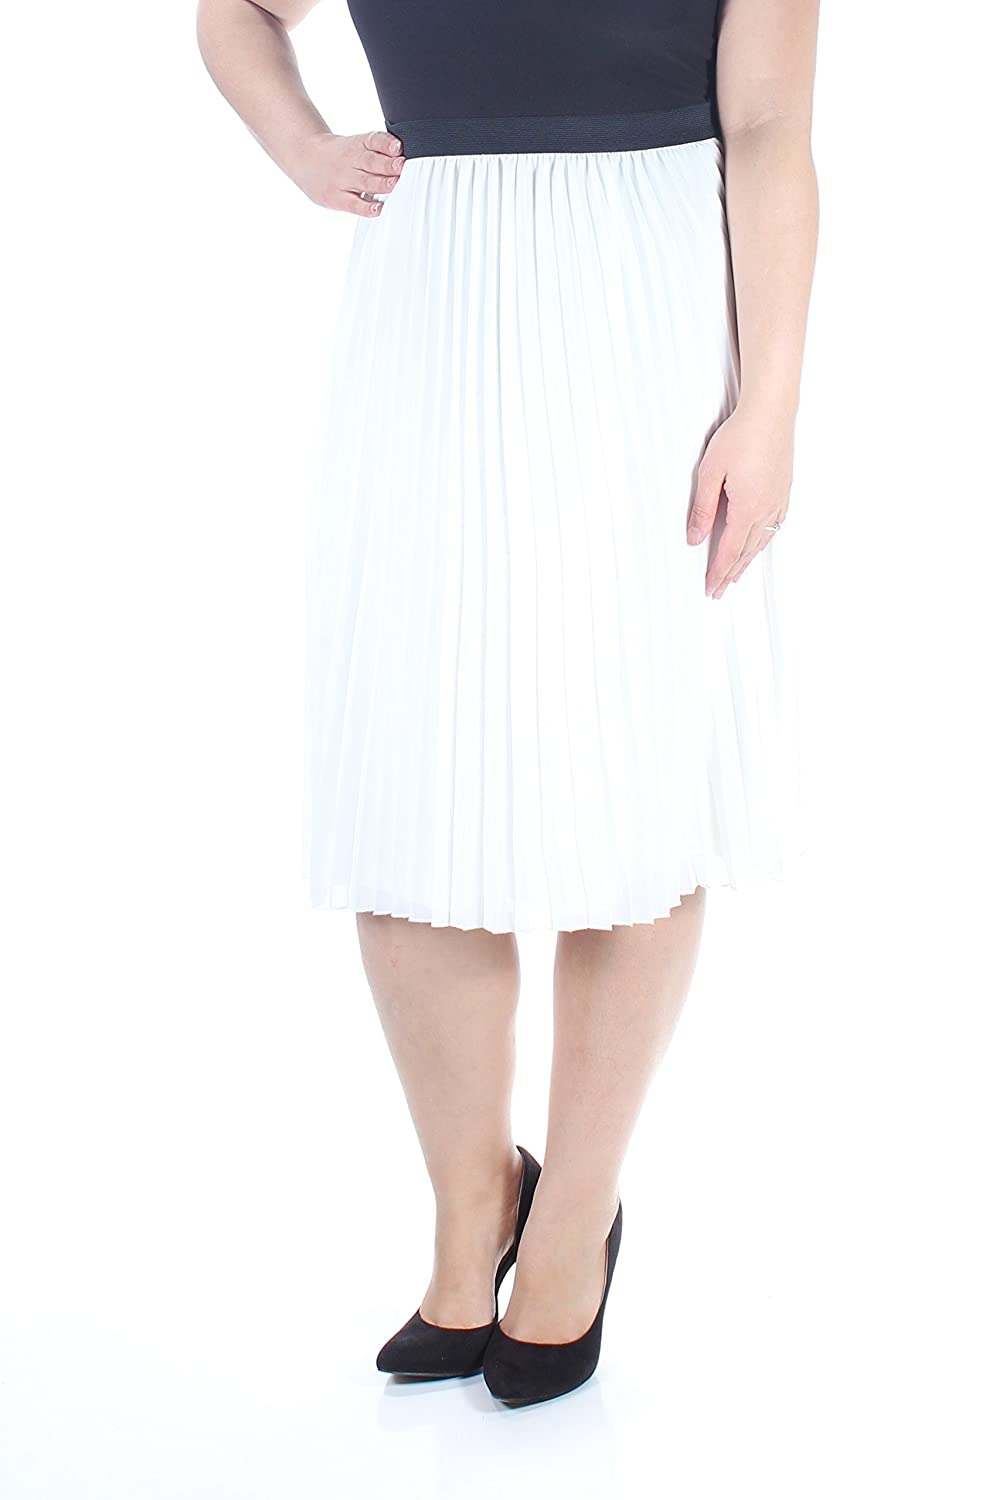 c6016610e0 Tommy Hilfiger Women's Pleated A-Line Skirt (XL, White) at Amazon Women's  Clothing store: